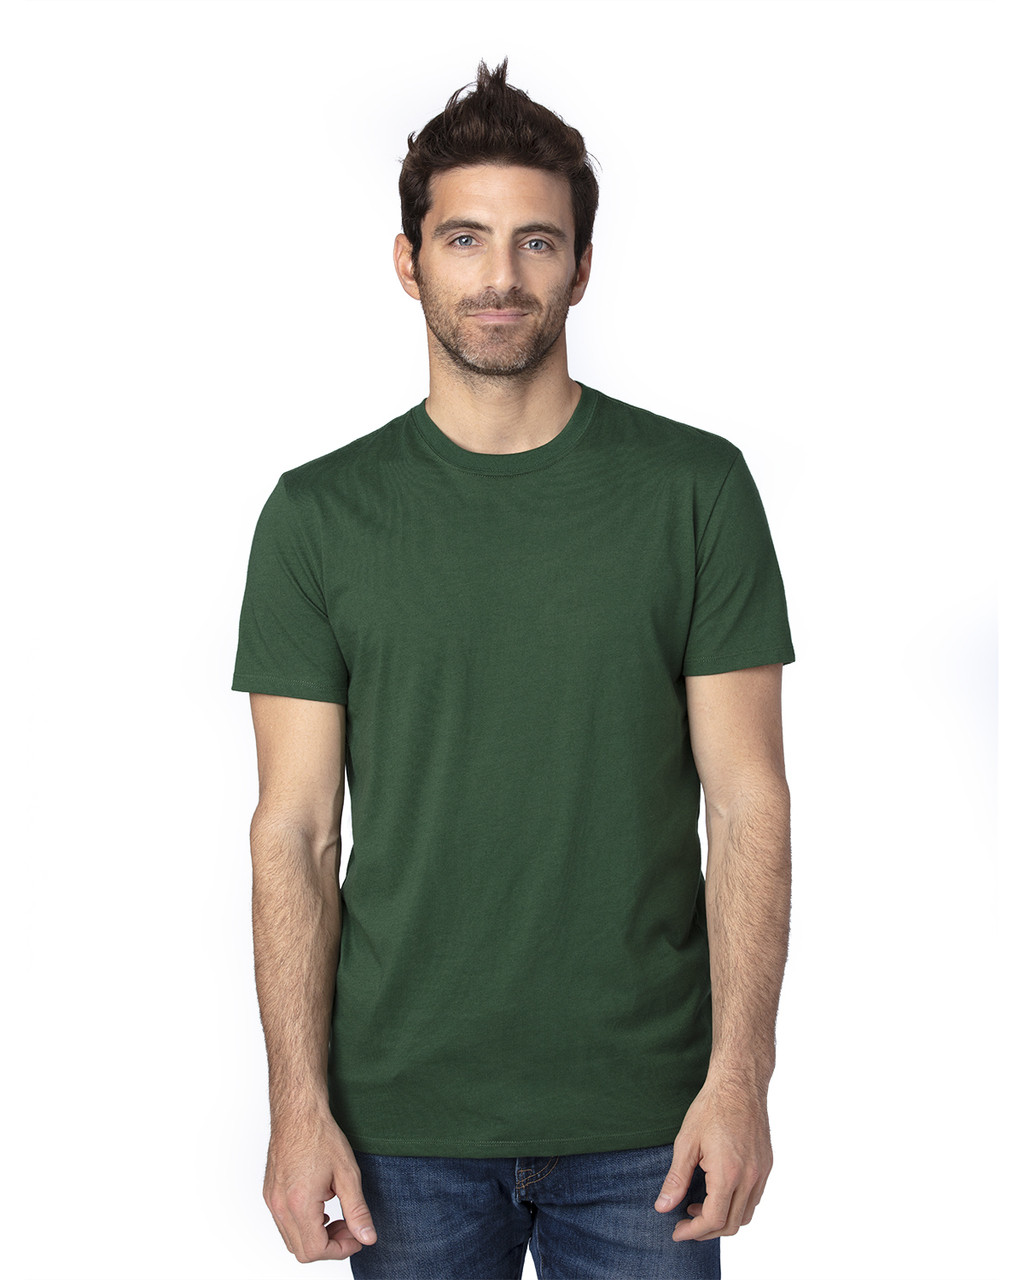 Forest Green - 100A Threadfast Unisex Ultimate Short-Sleeve T-Shirt | BlankClothing.ca